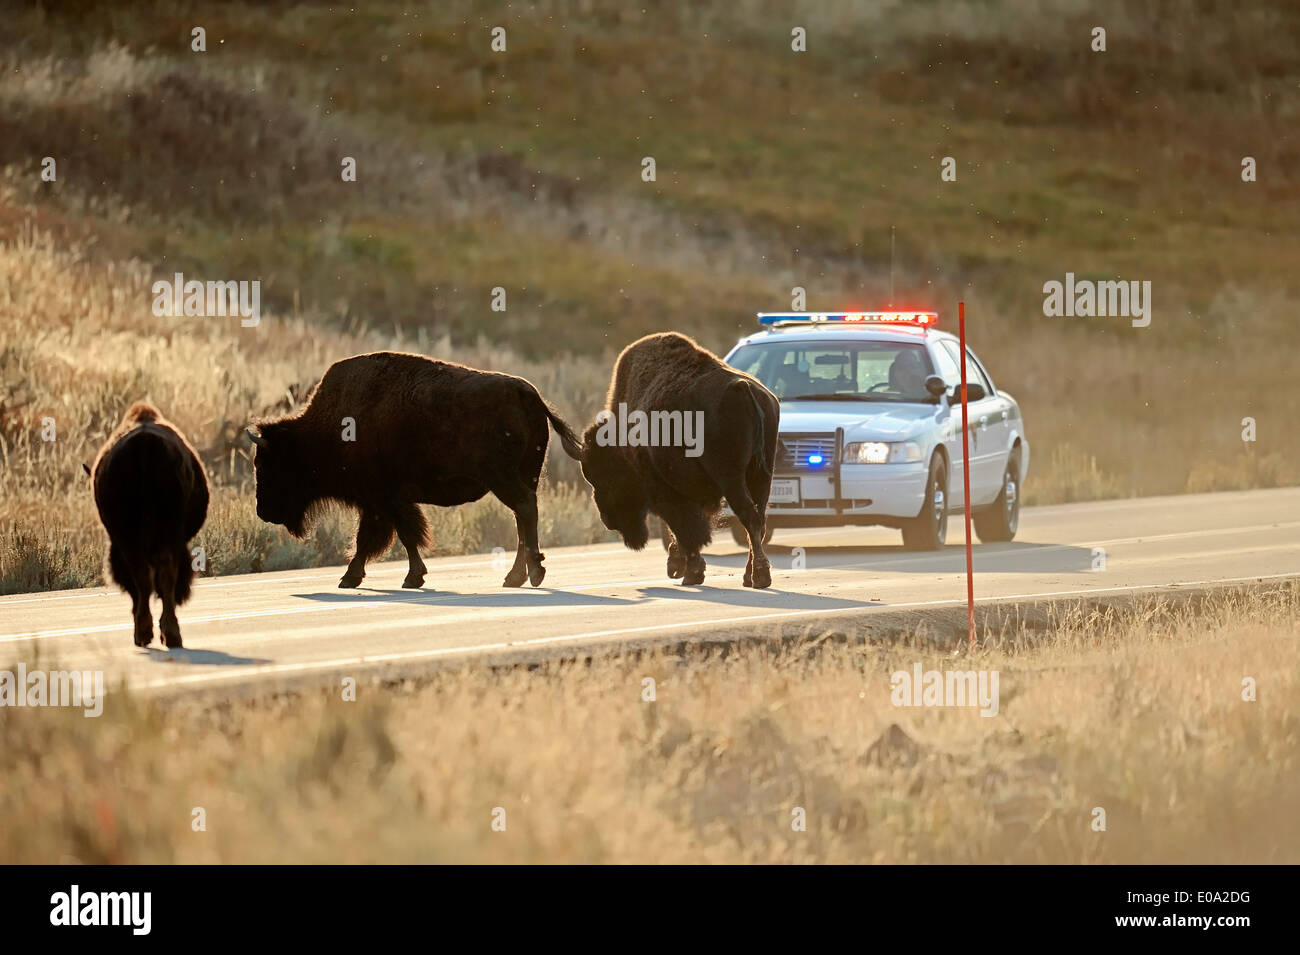 American Bisons or American Buffalos (Bison bison) standing on a road in front of a park ranger car, Yellowstone Stock Photo